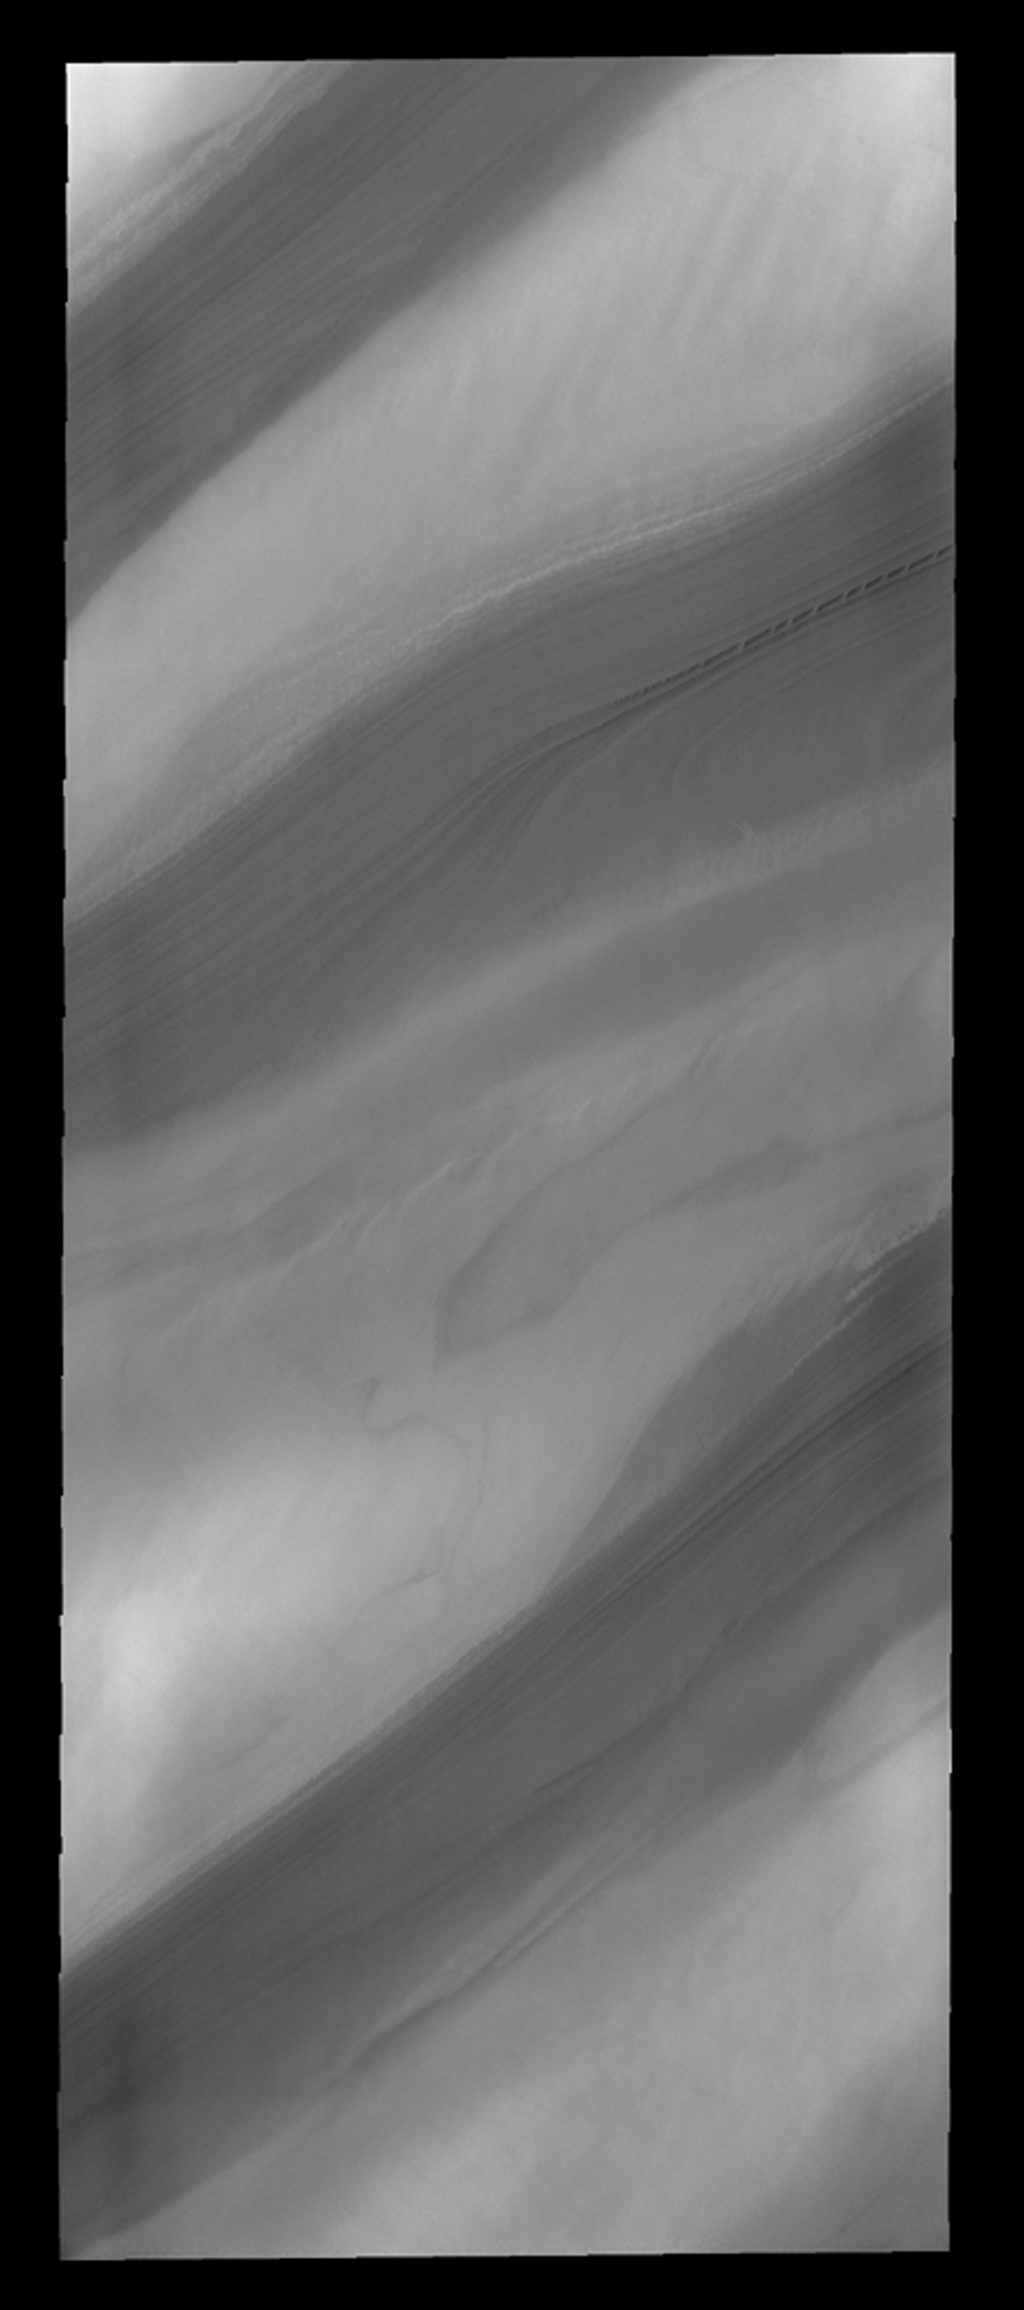 With summer fast approaching, the frost has sublimated away and the layers that make up the north polar cap are easily discernable, as seen by NASA's 2001 Mars Odyssey spacecraft.